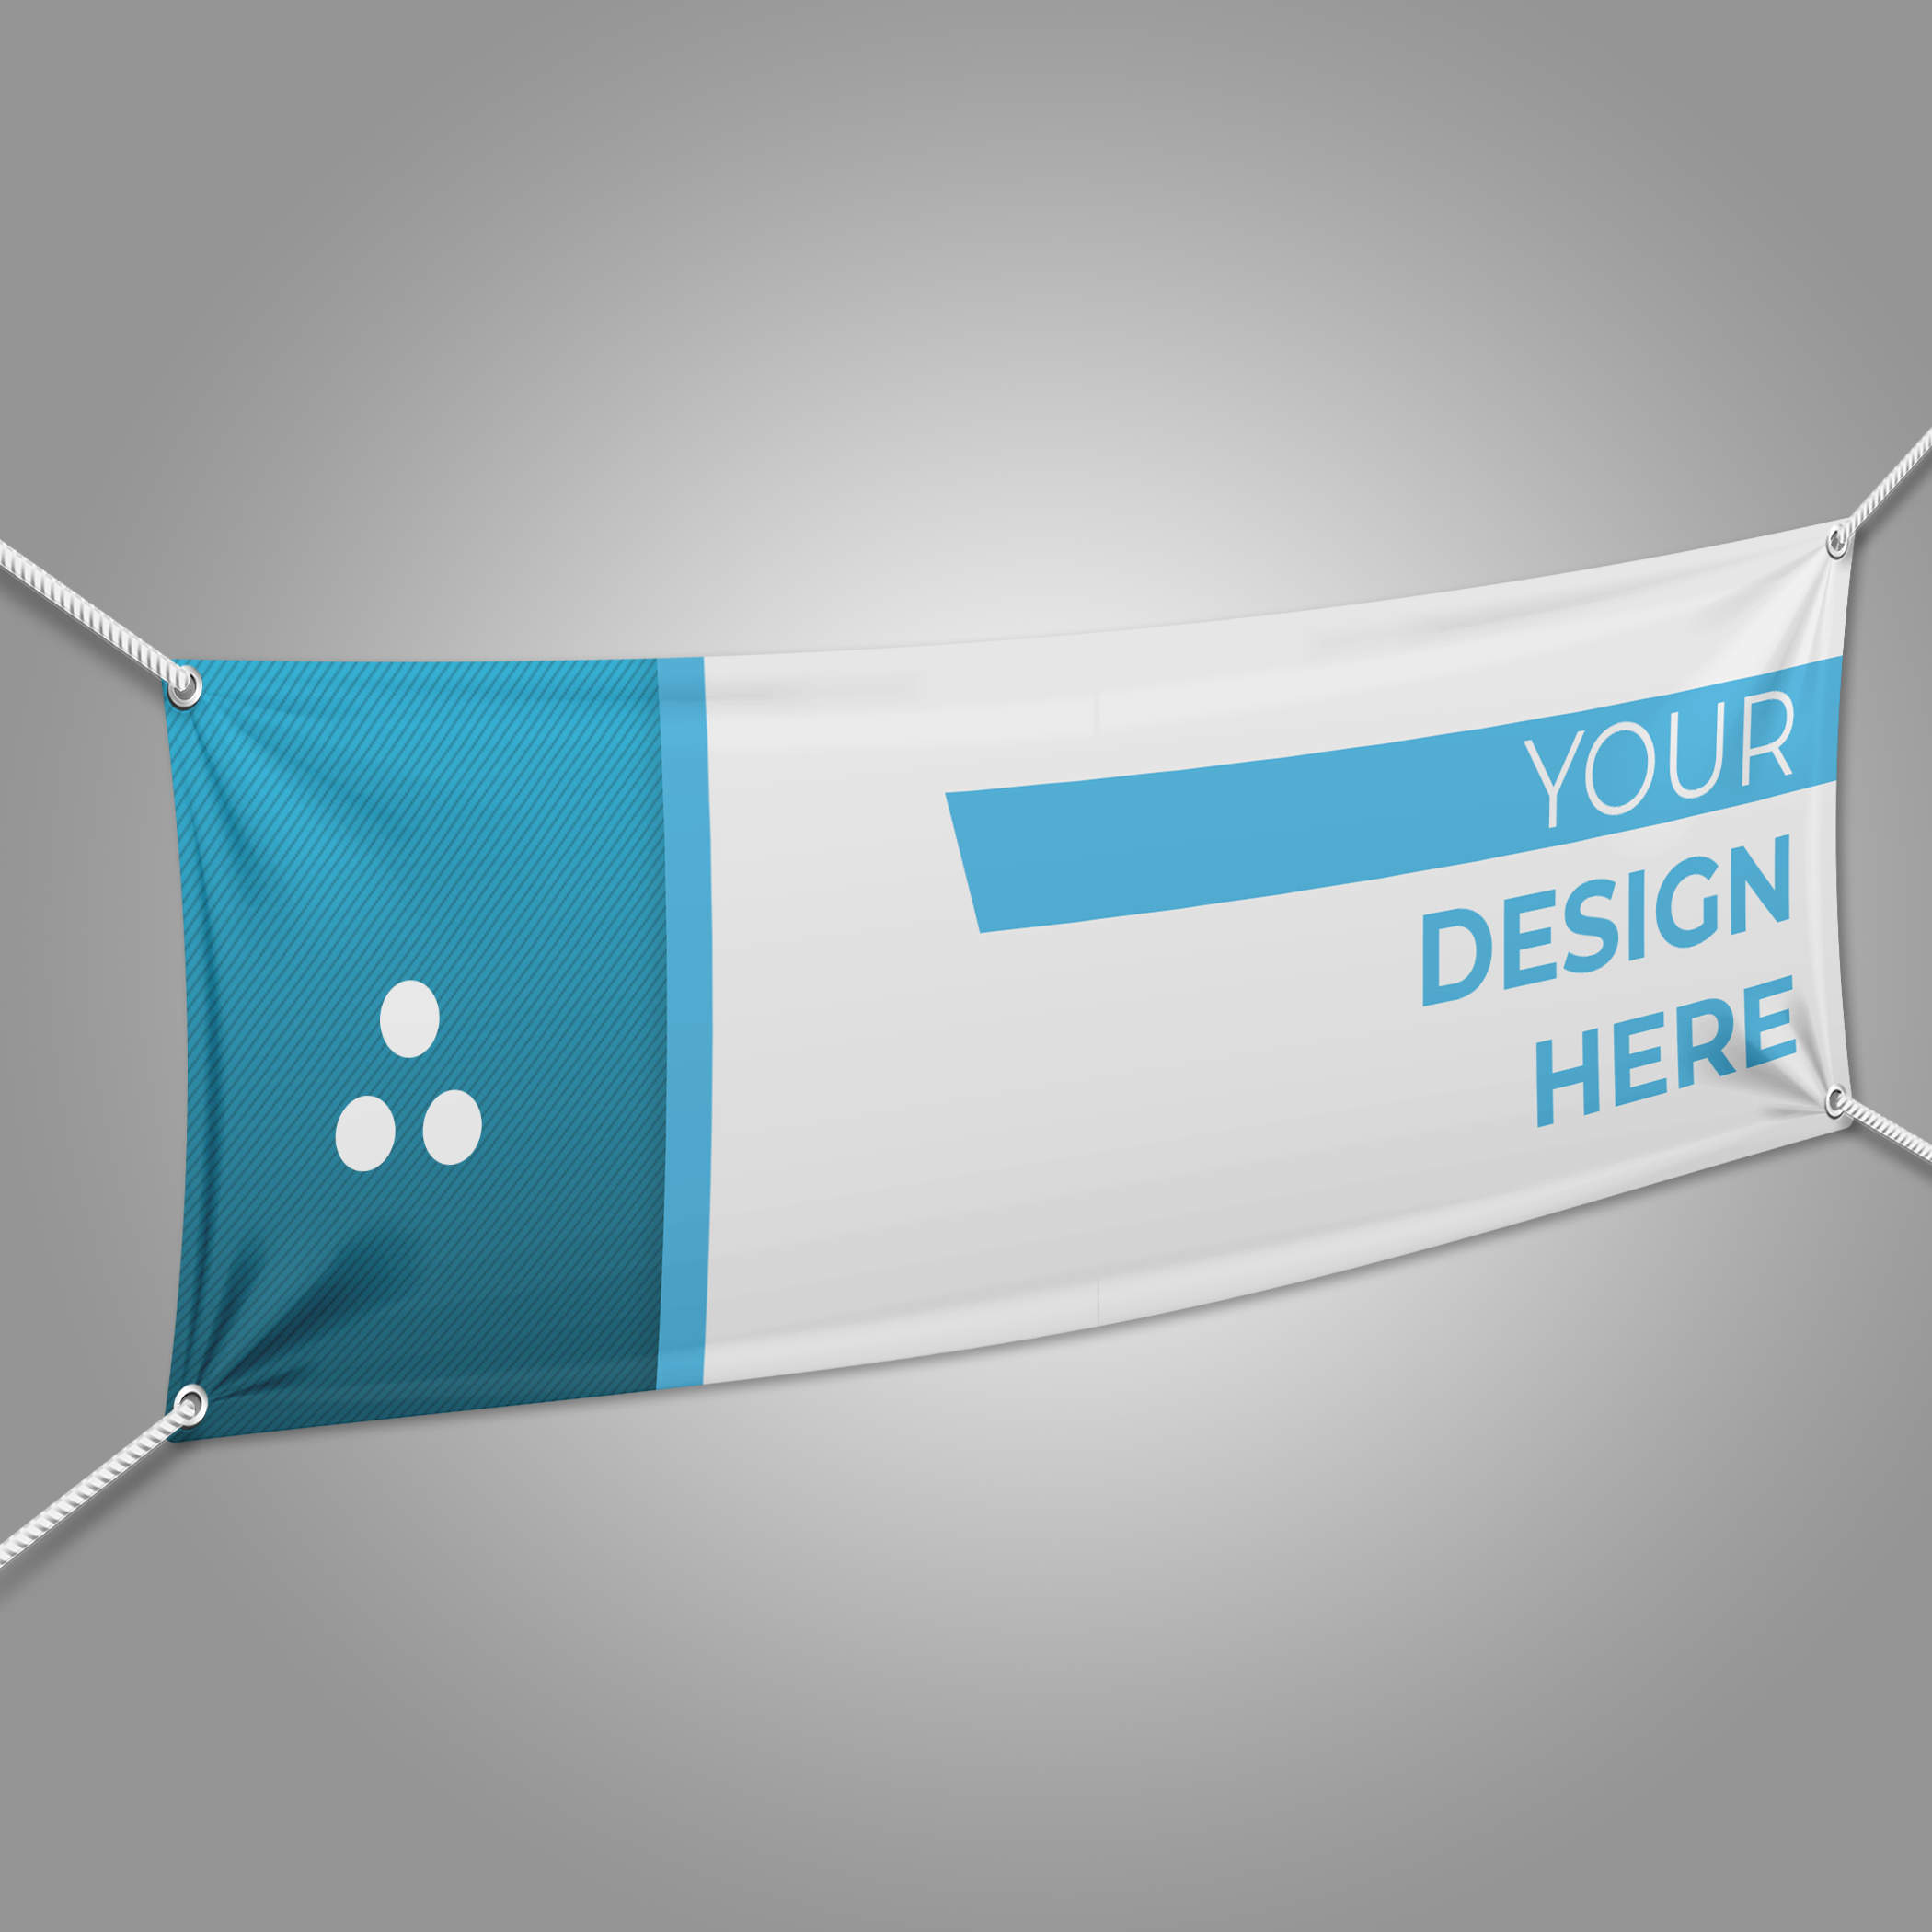 Custom Banners Custom Banners Banner Your Design